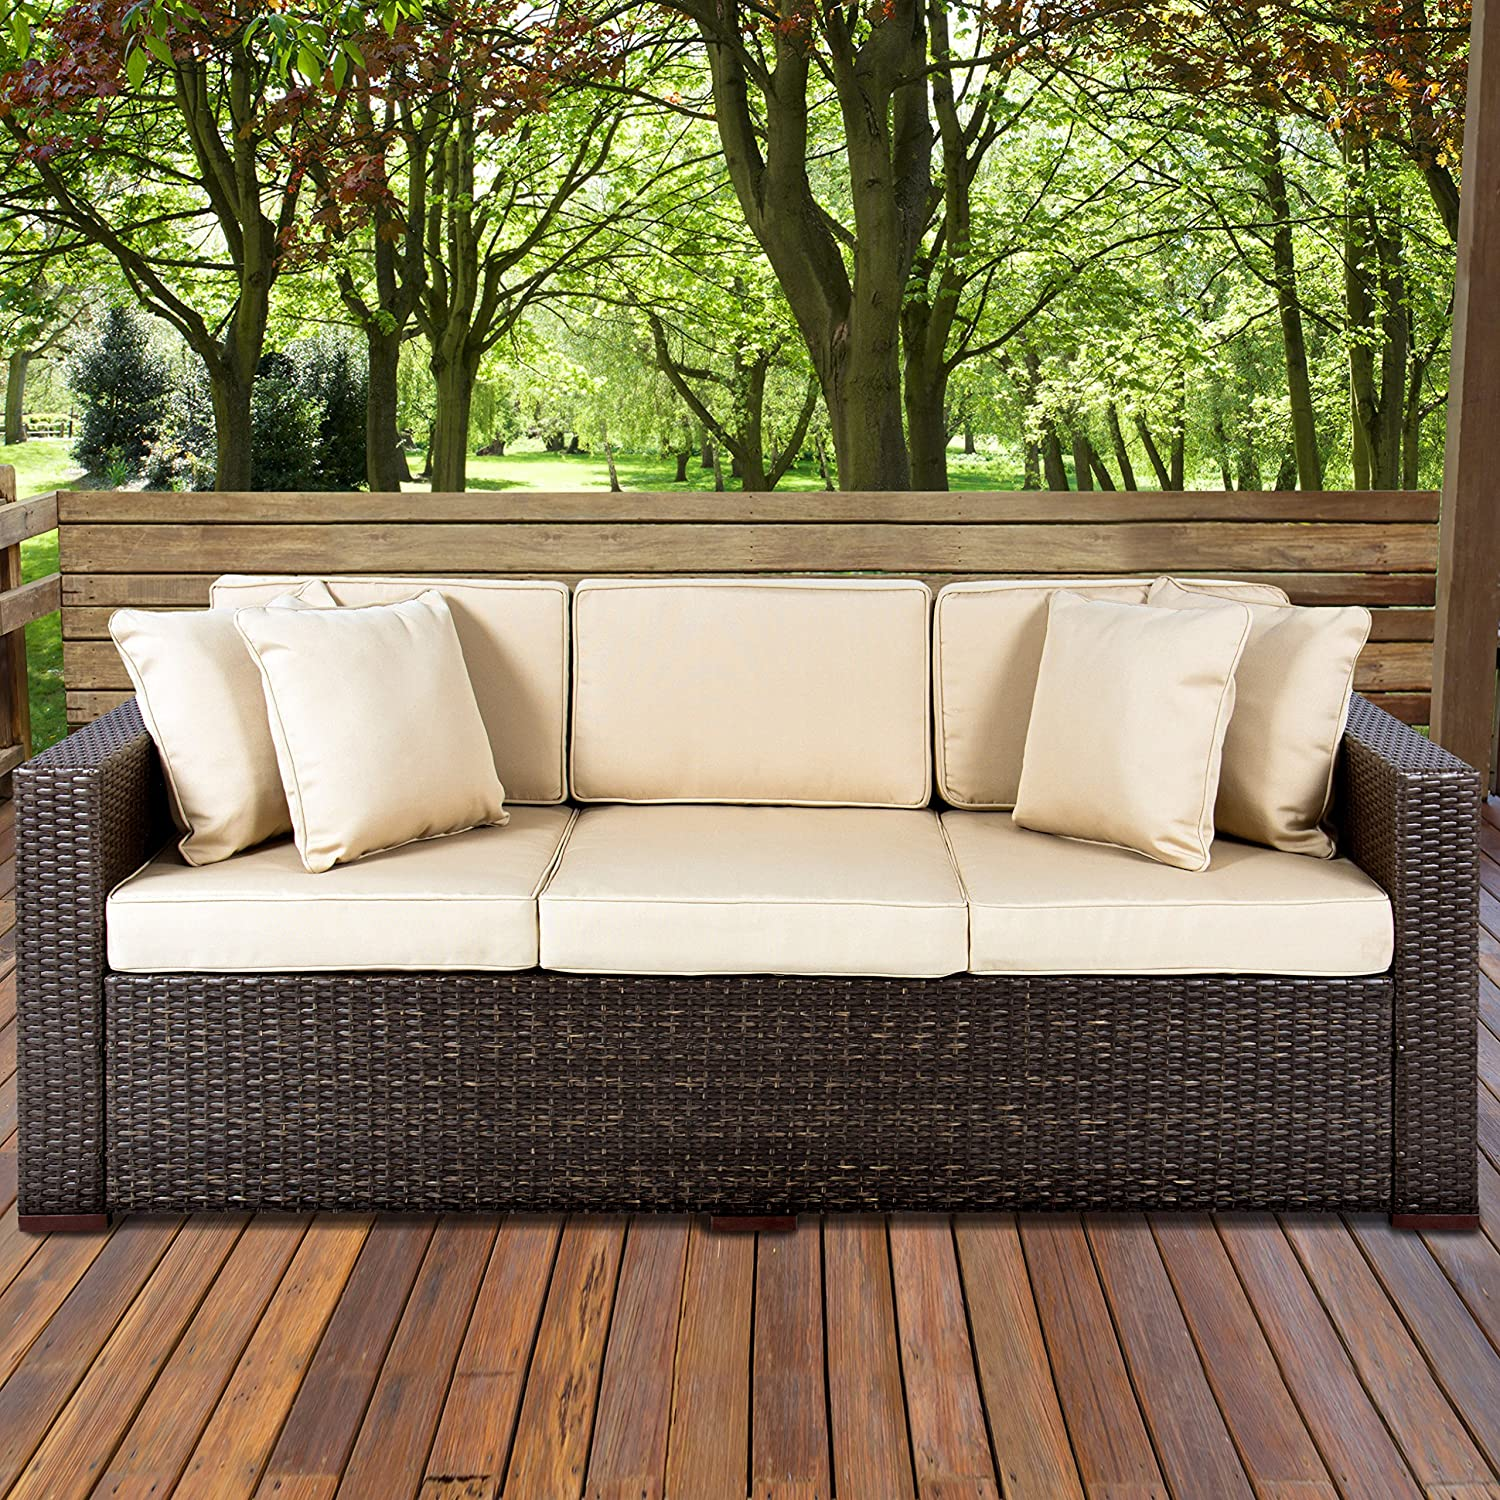 garden patio rakuten costway furniture ottoman product set sectional sofa pcs cushioned shop wicker rattan